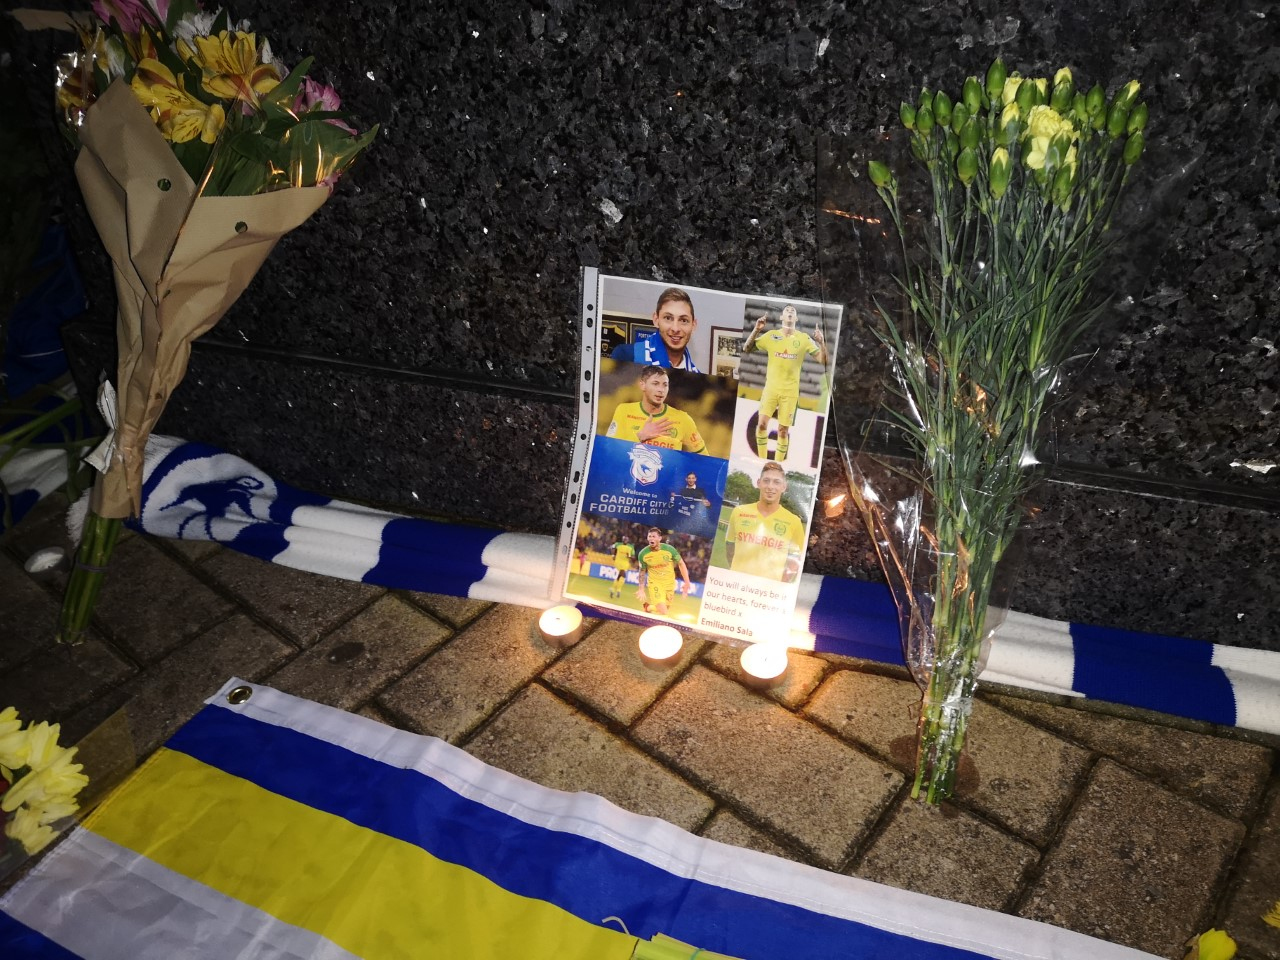 Crowdfunding page started for new Sala search